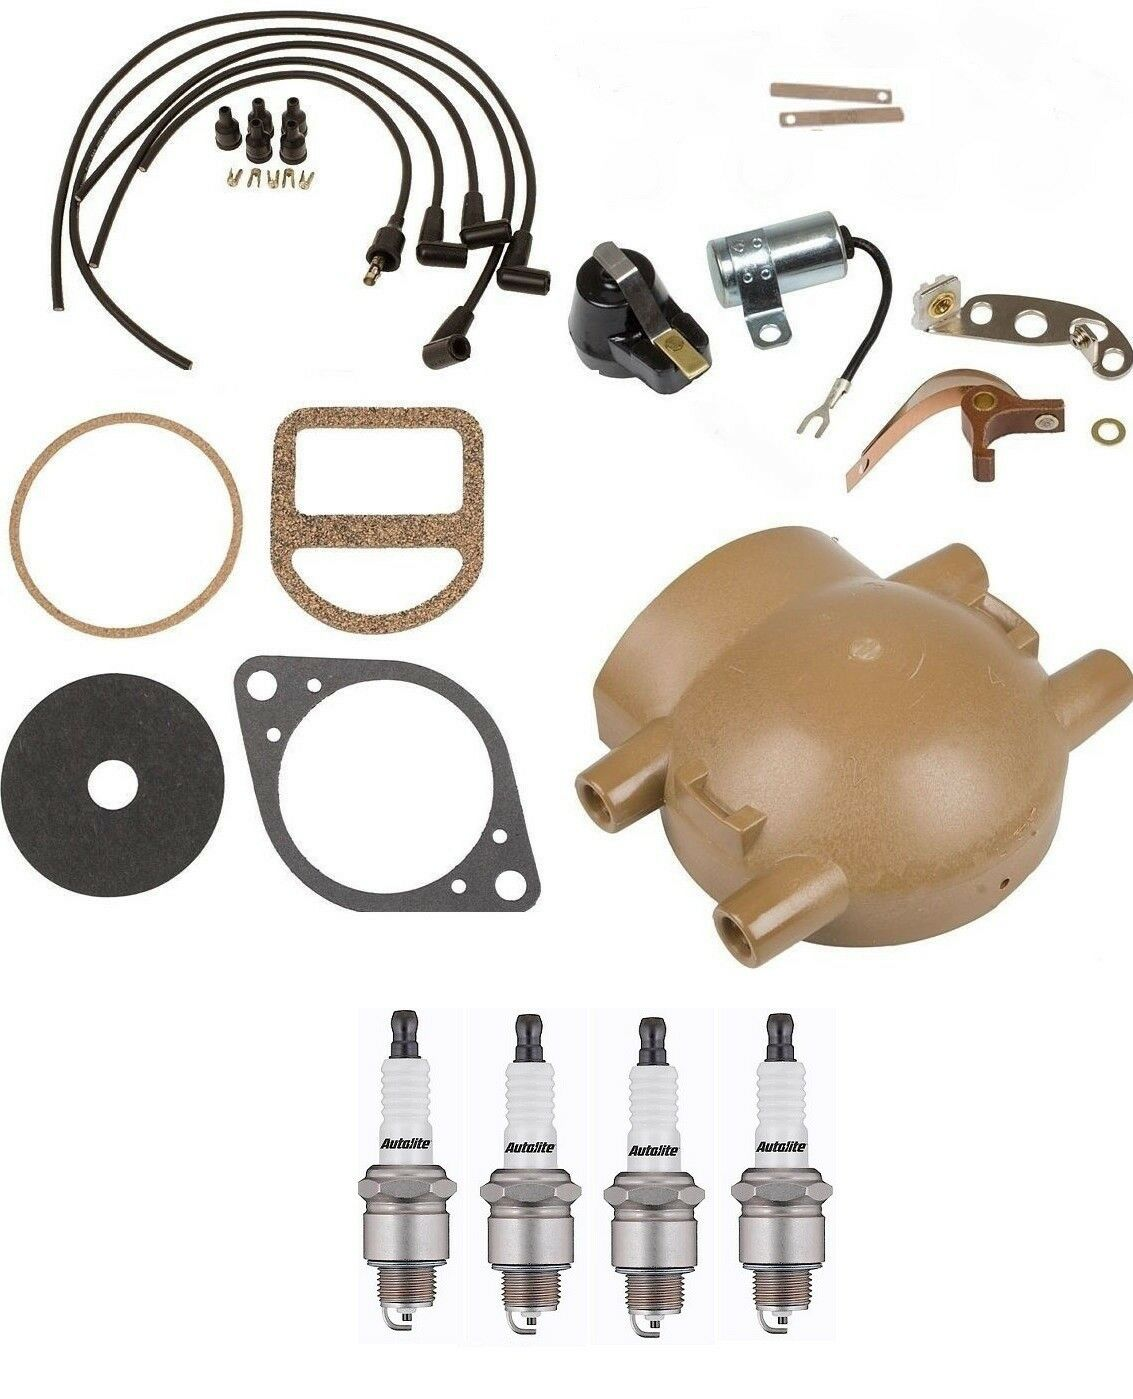 hight resolution of complete tune up kit for ford 9n 2n 8n tractors with front mount distributor for sale online ebay